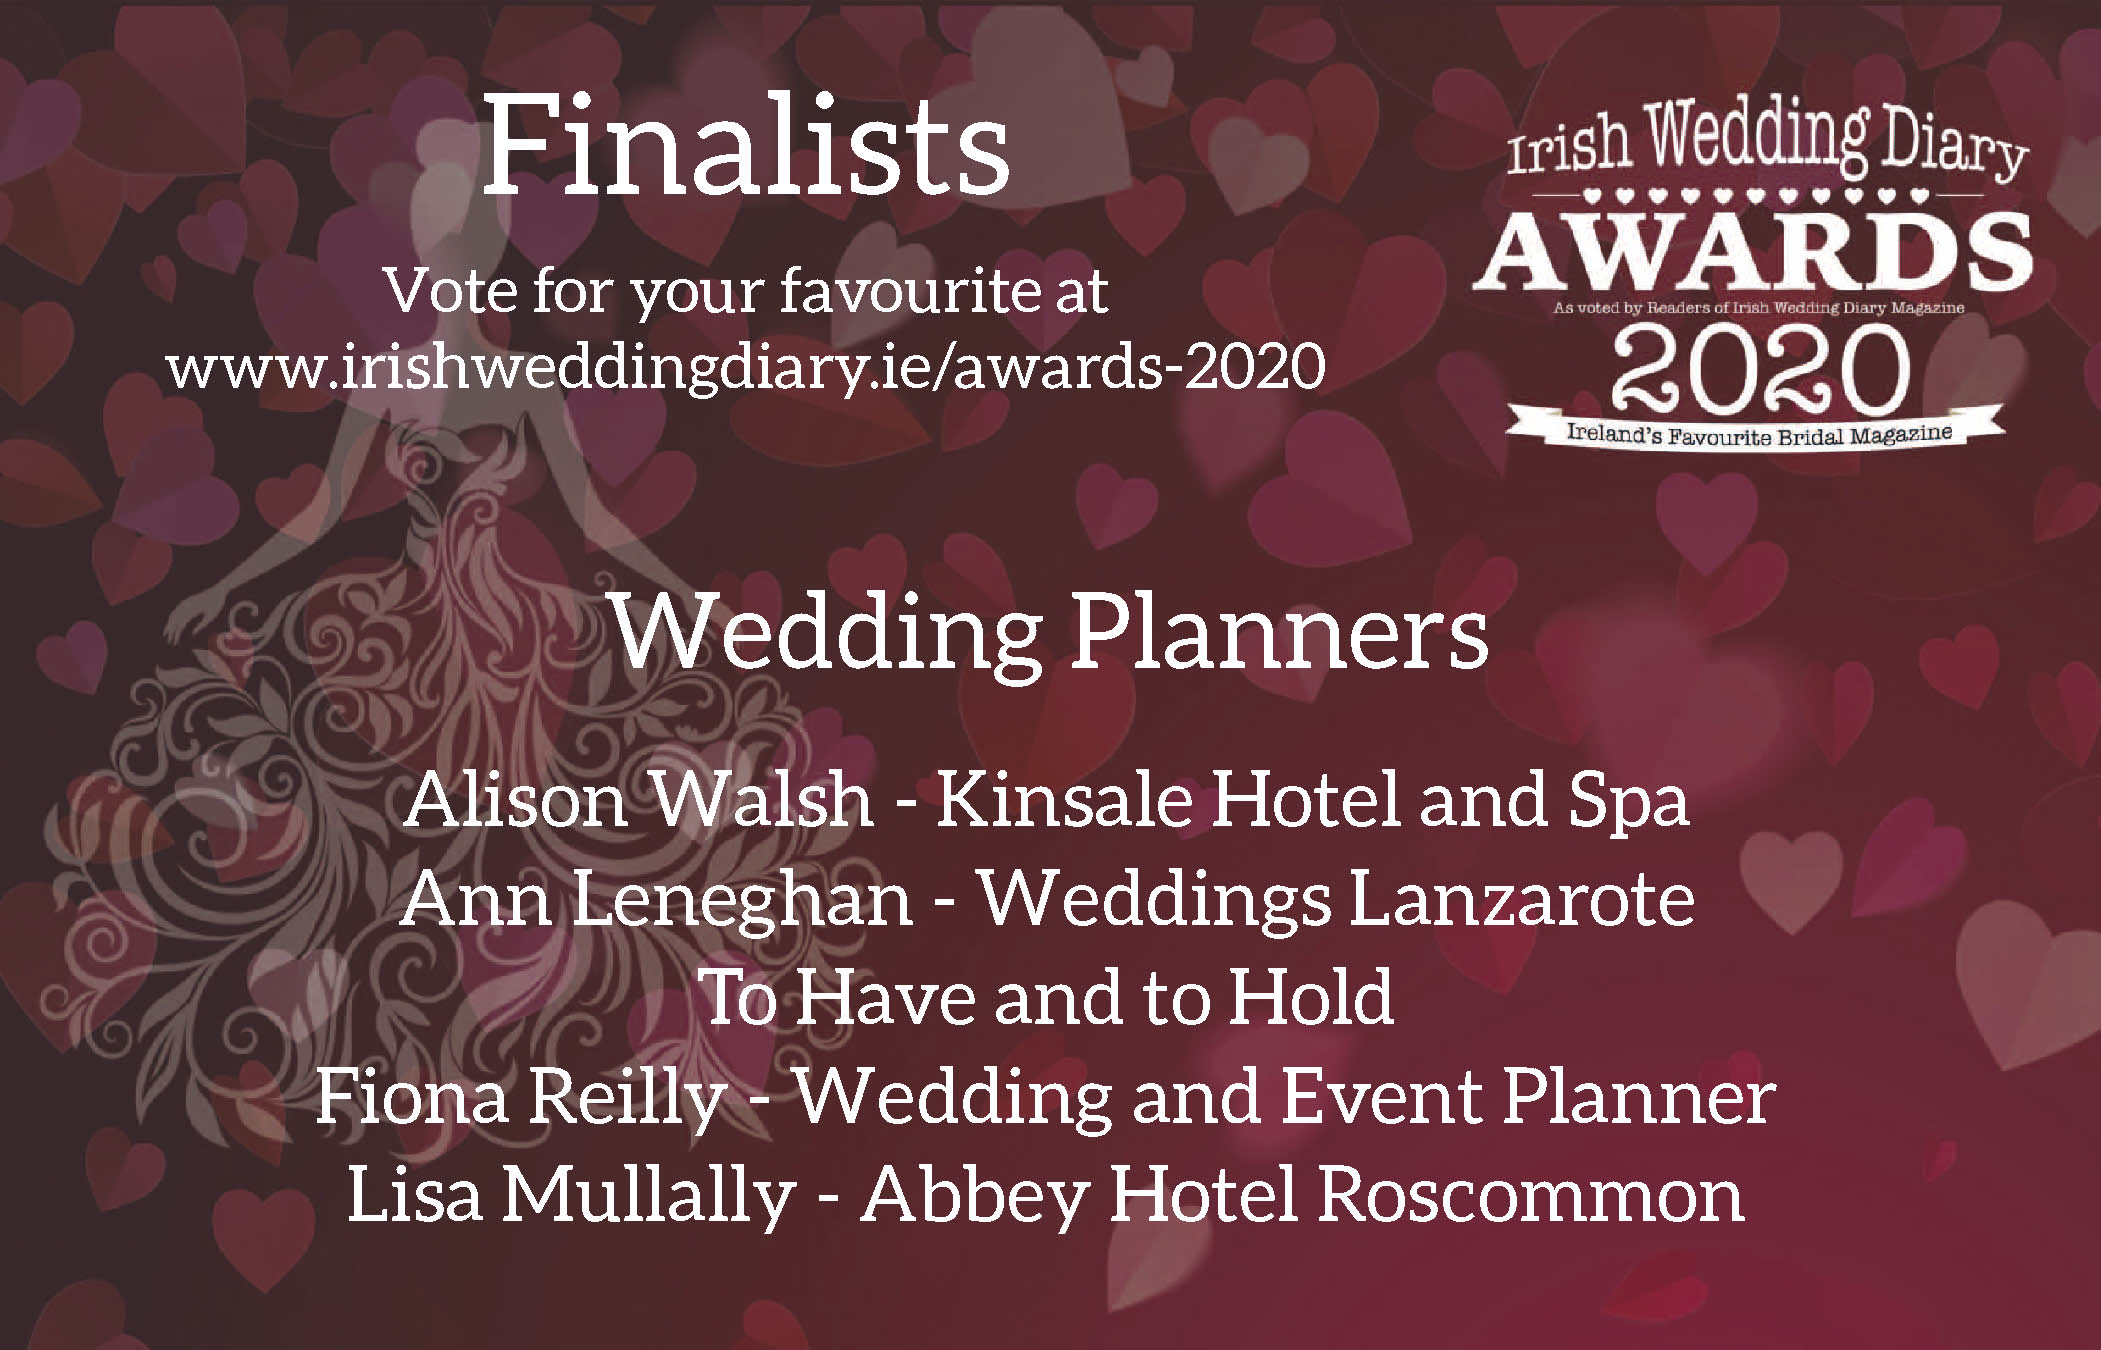 IWD-Awards-Finalists-2020_Wedding-Planners